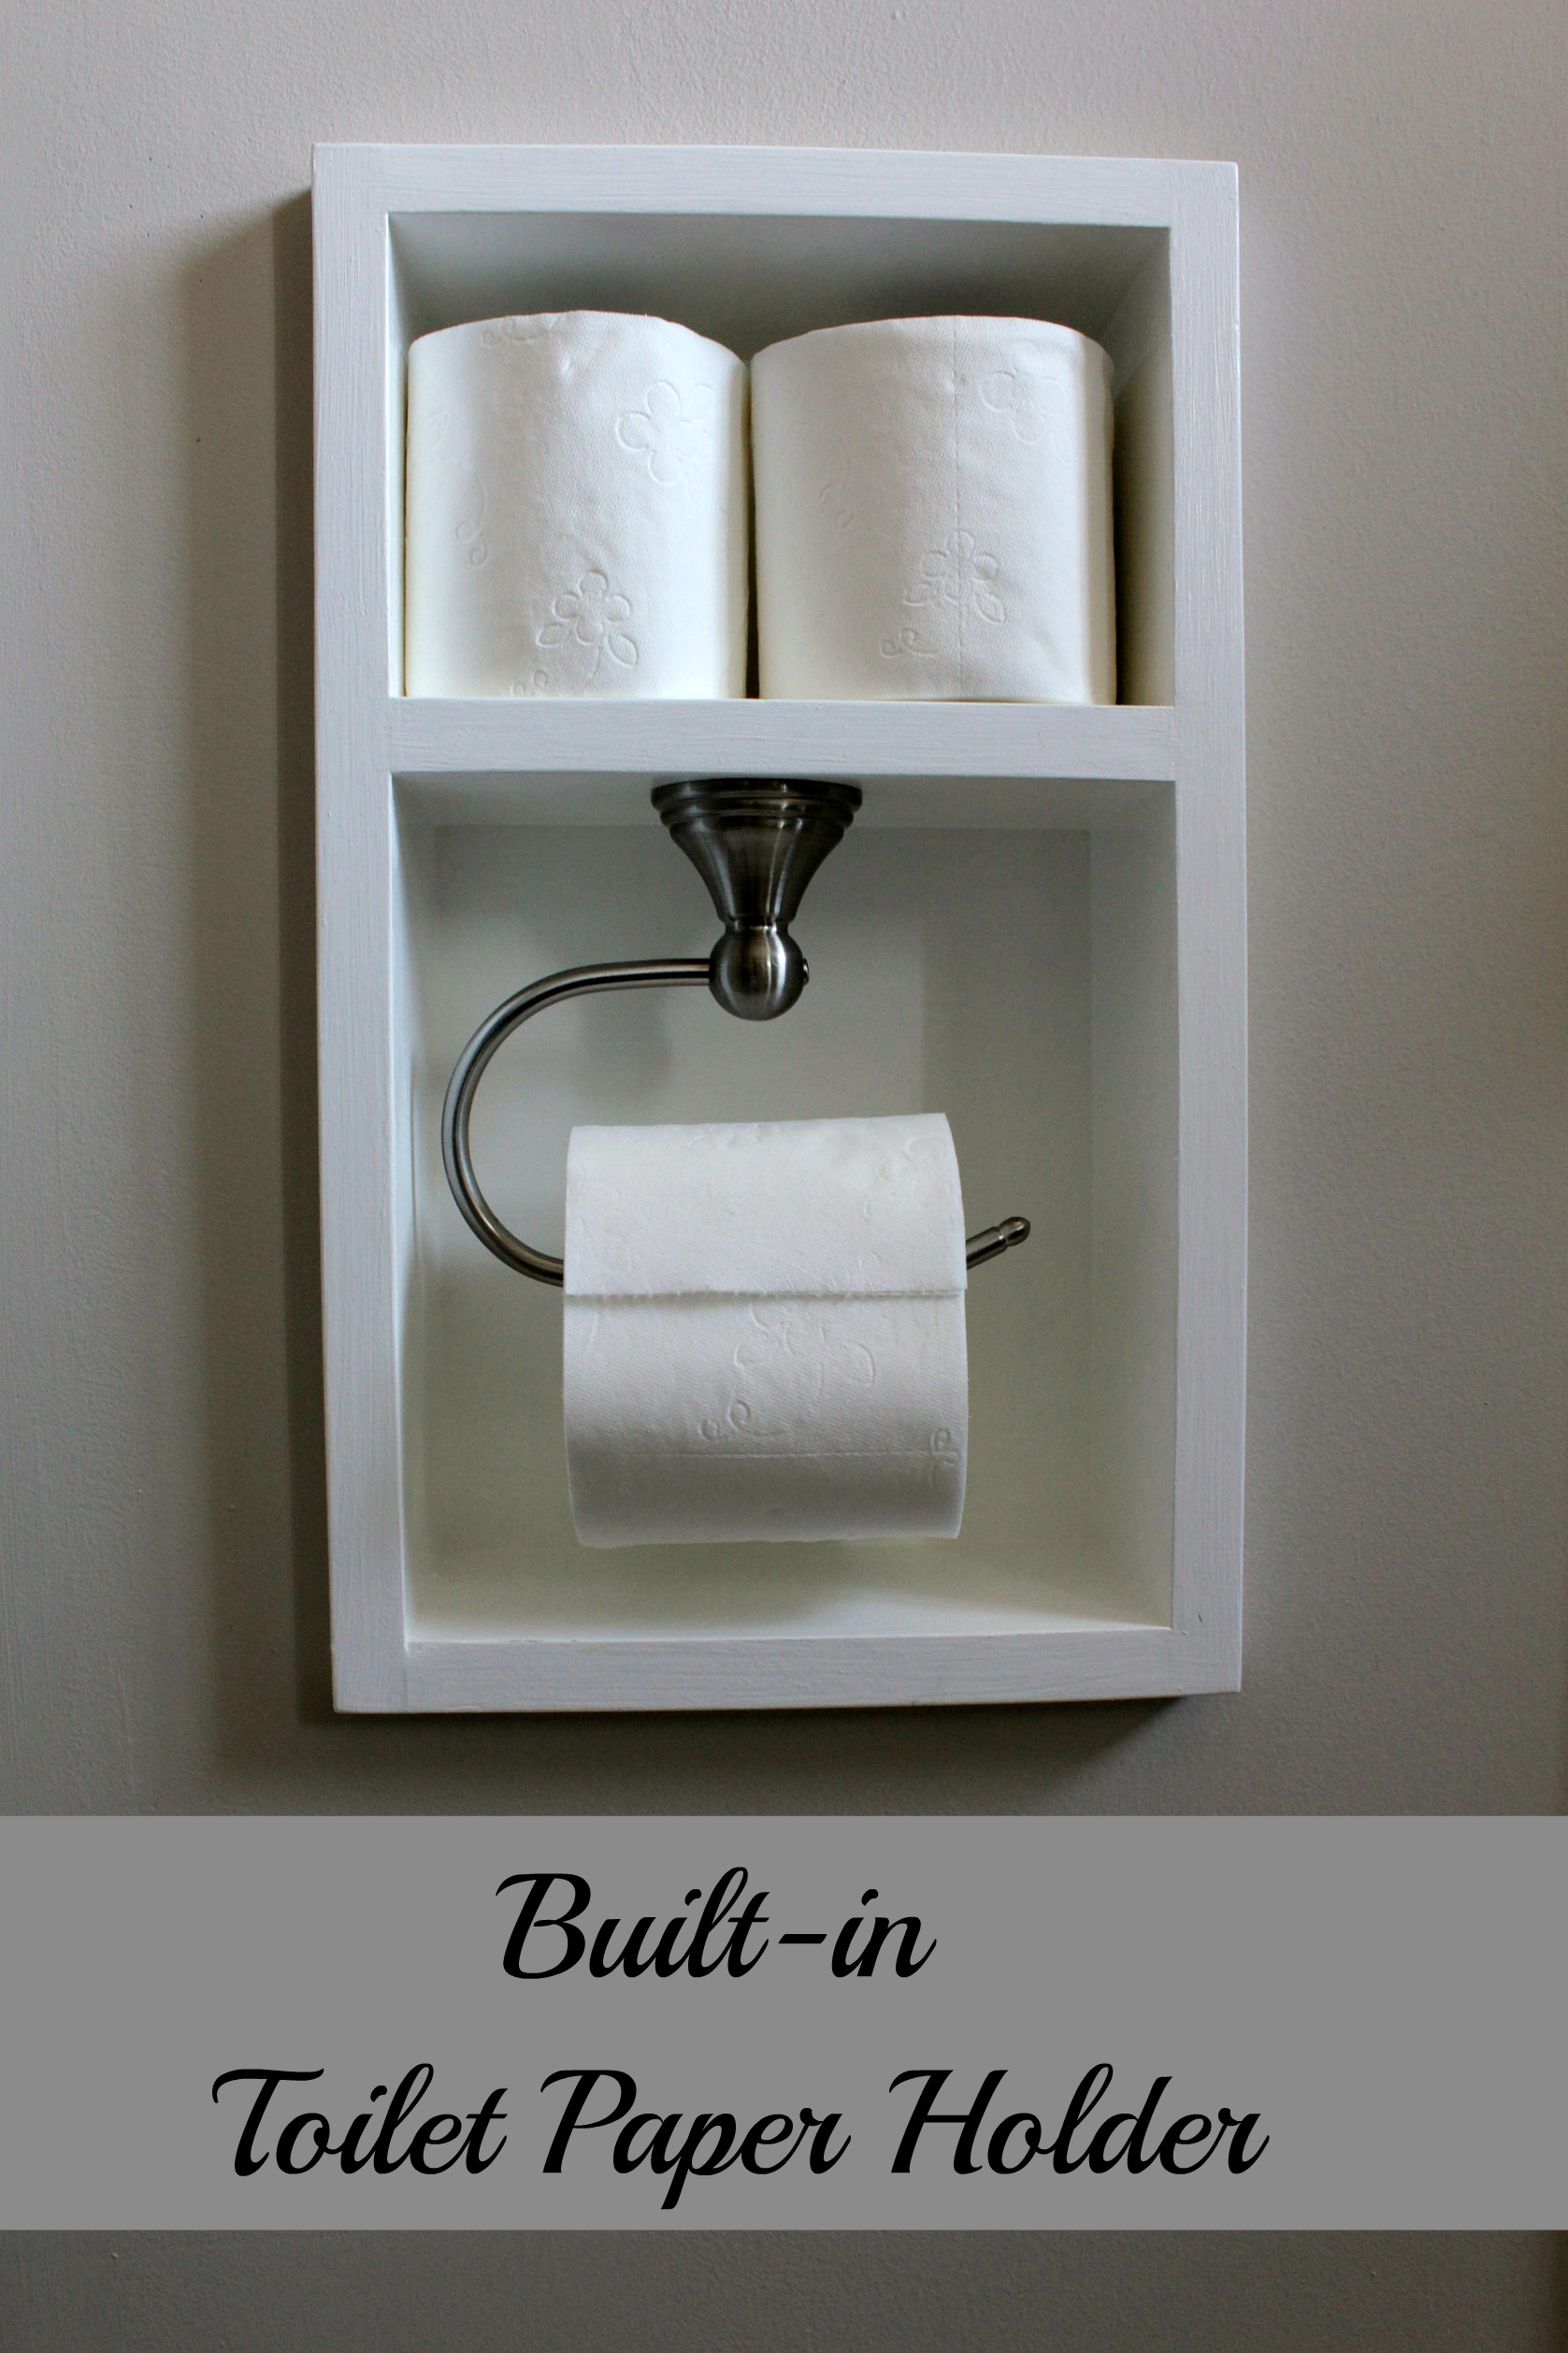 Turtles And Tails Recessed Toilet Paper Holder Aka Working With Small Spaces